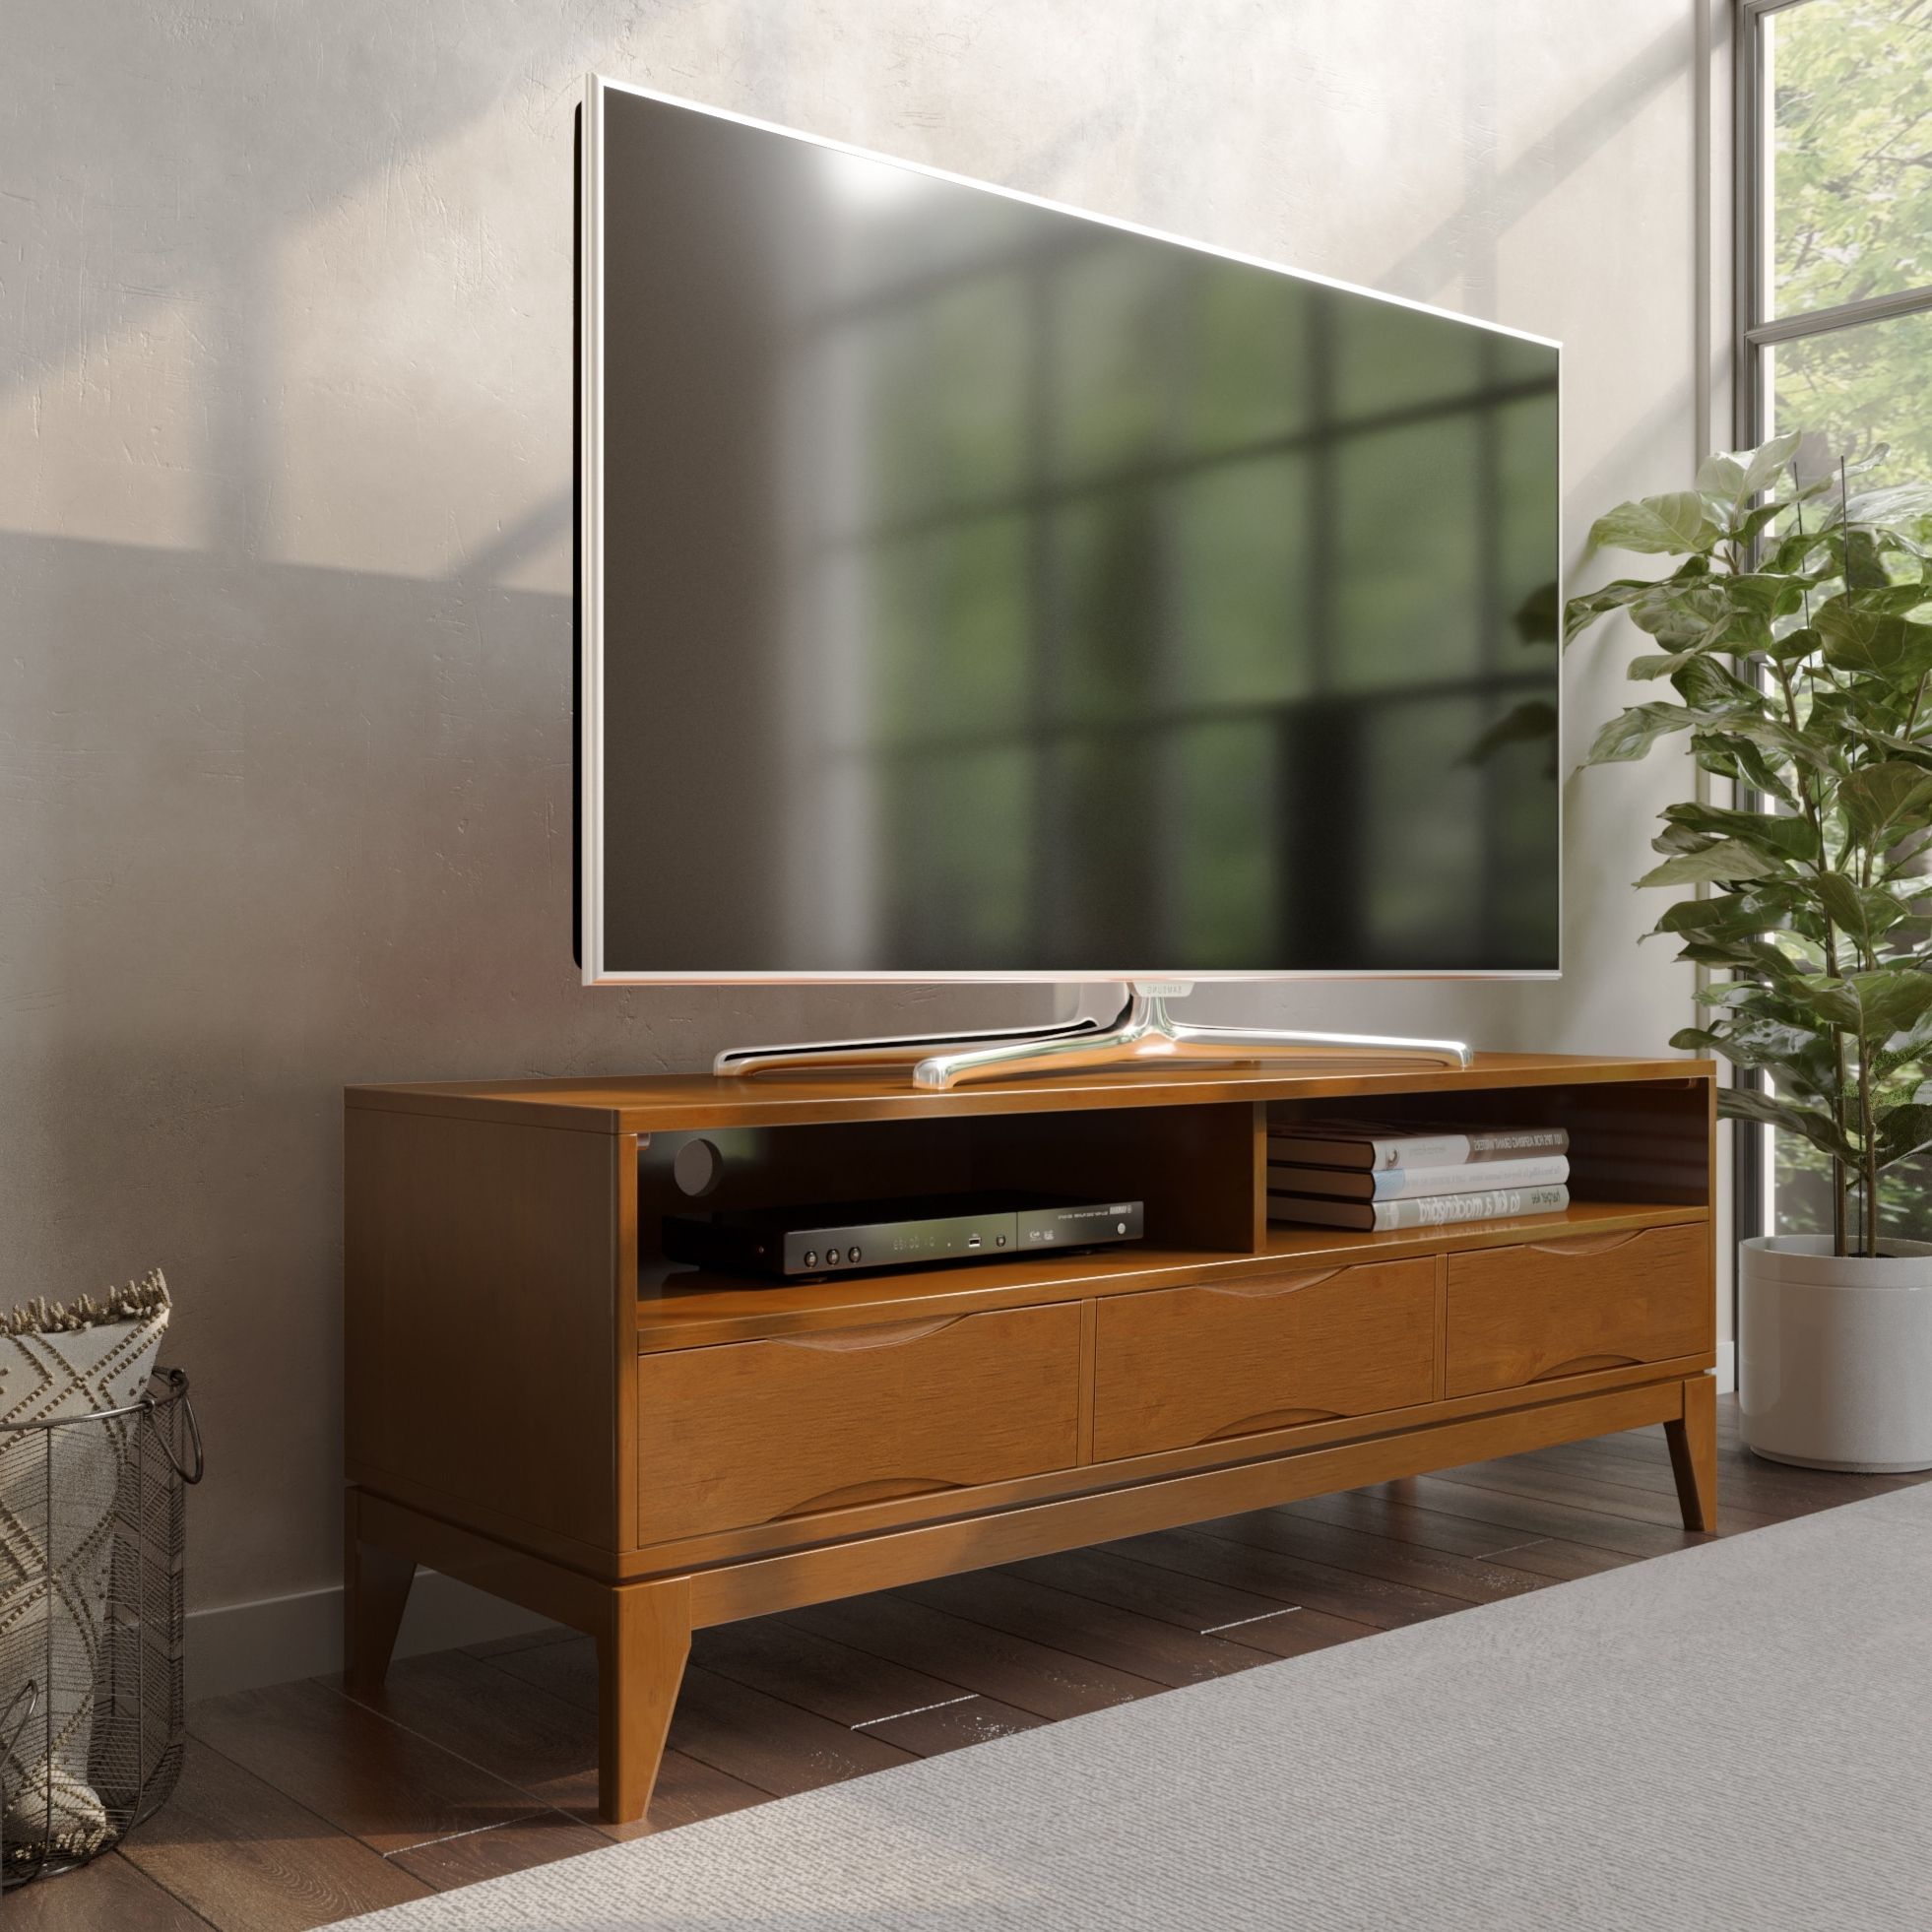 Wyndenhall Pearson Solid Hardwood 60 Inch Wide Mid Century Throughout Copen Wide Tv Stands (View 5 of 20)